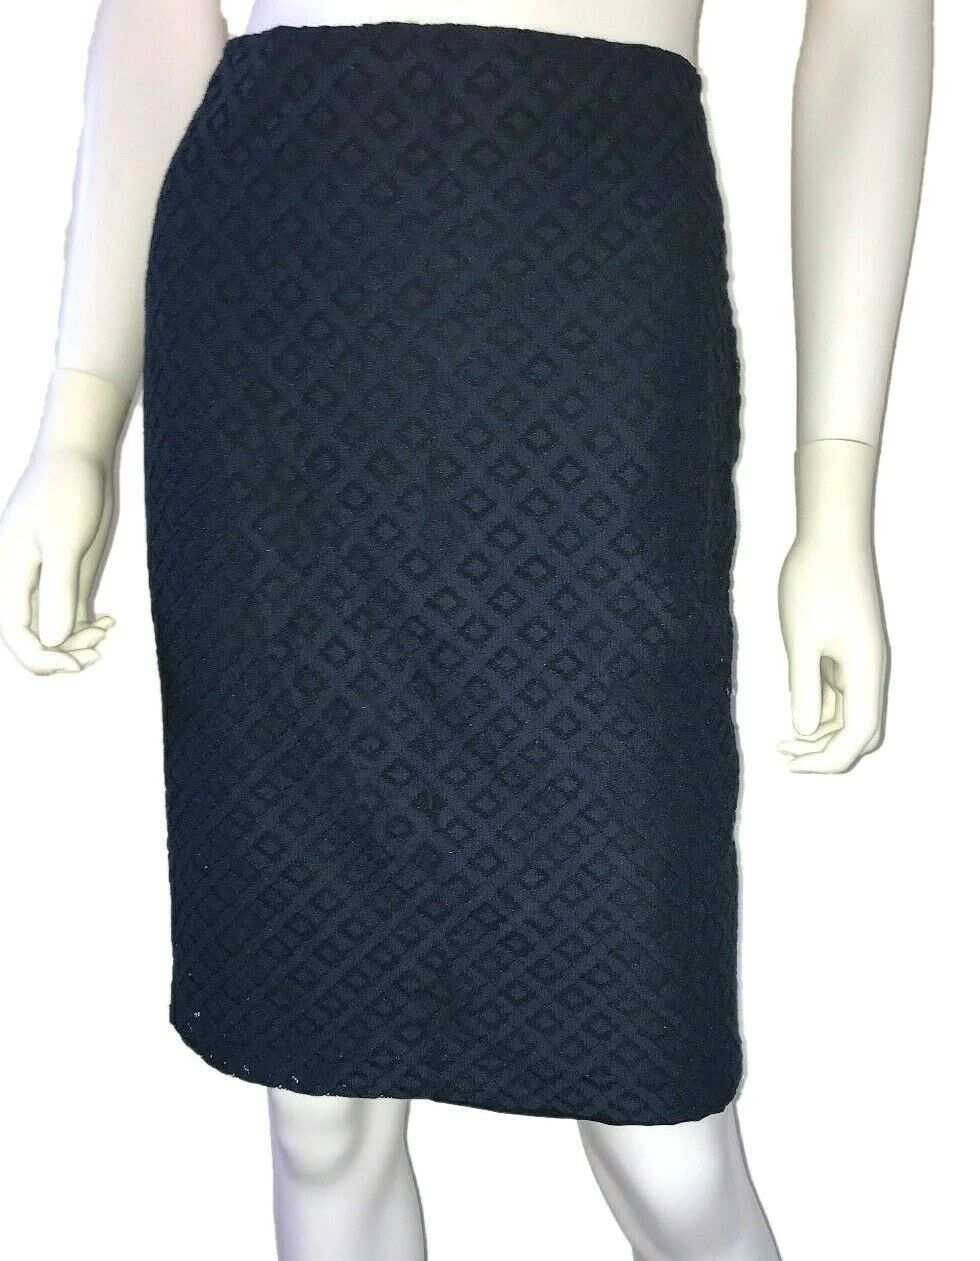 New w Tags (). St. John Pencil Skirt. Navy bluee. Available sizes  2, 6, 8